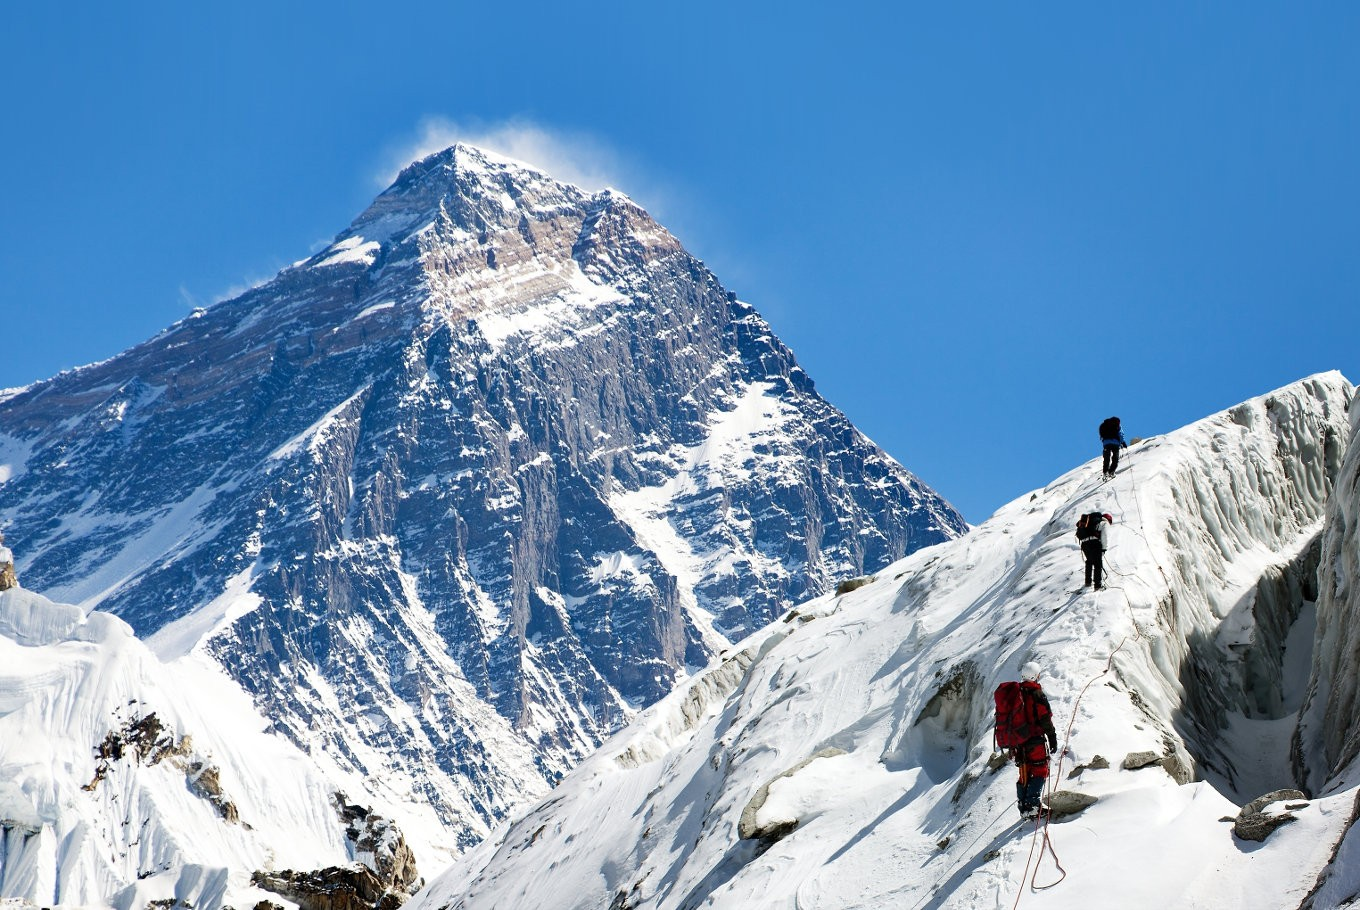 Everest's Hillary Step now a 'slope': Climber